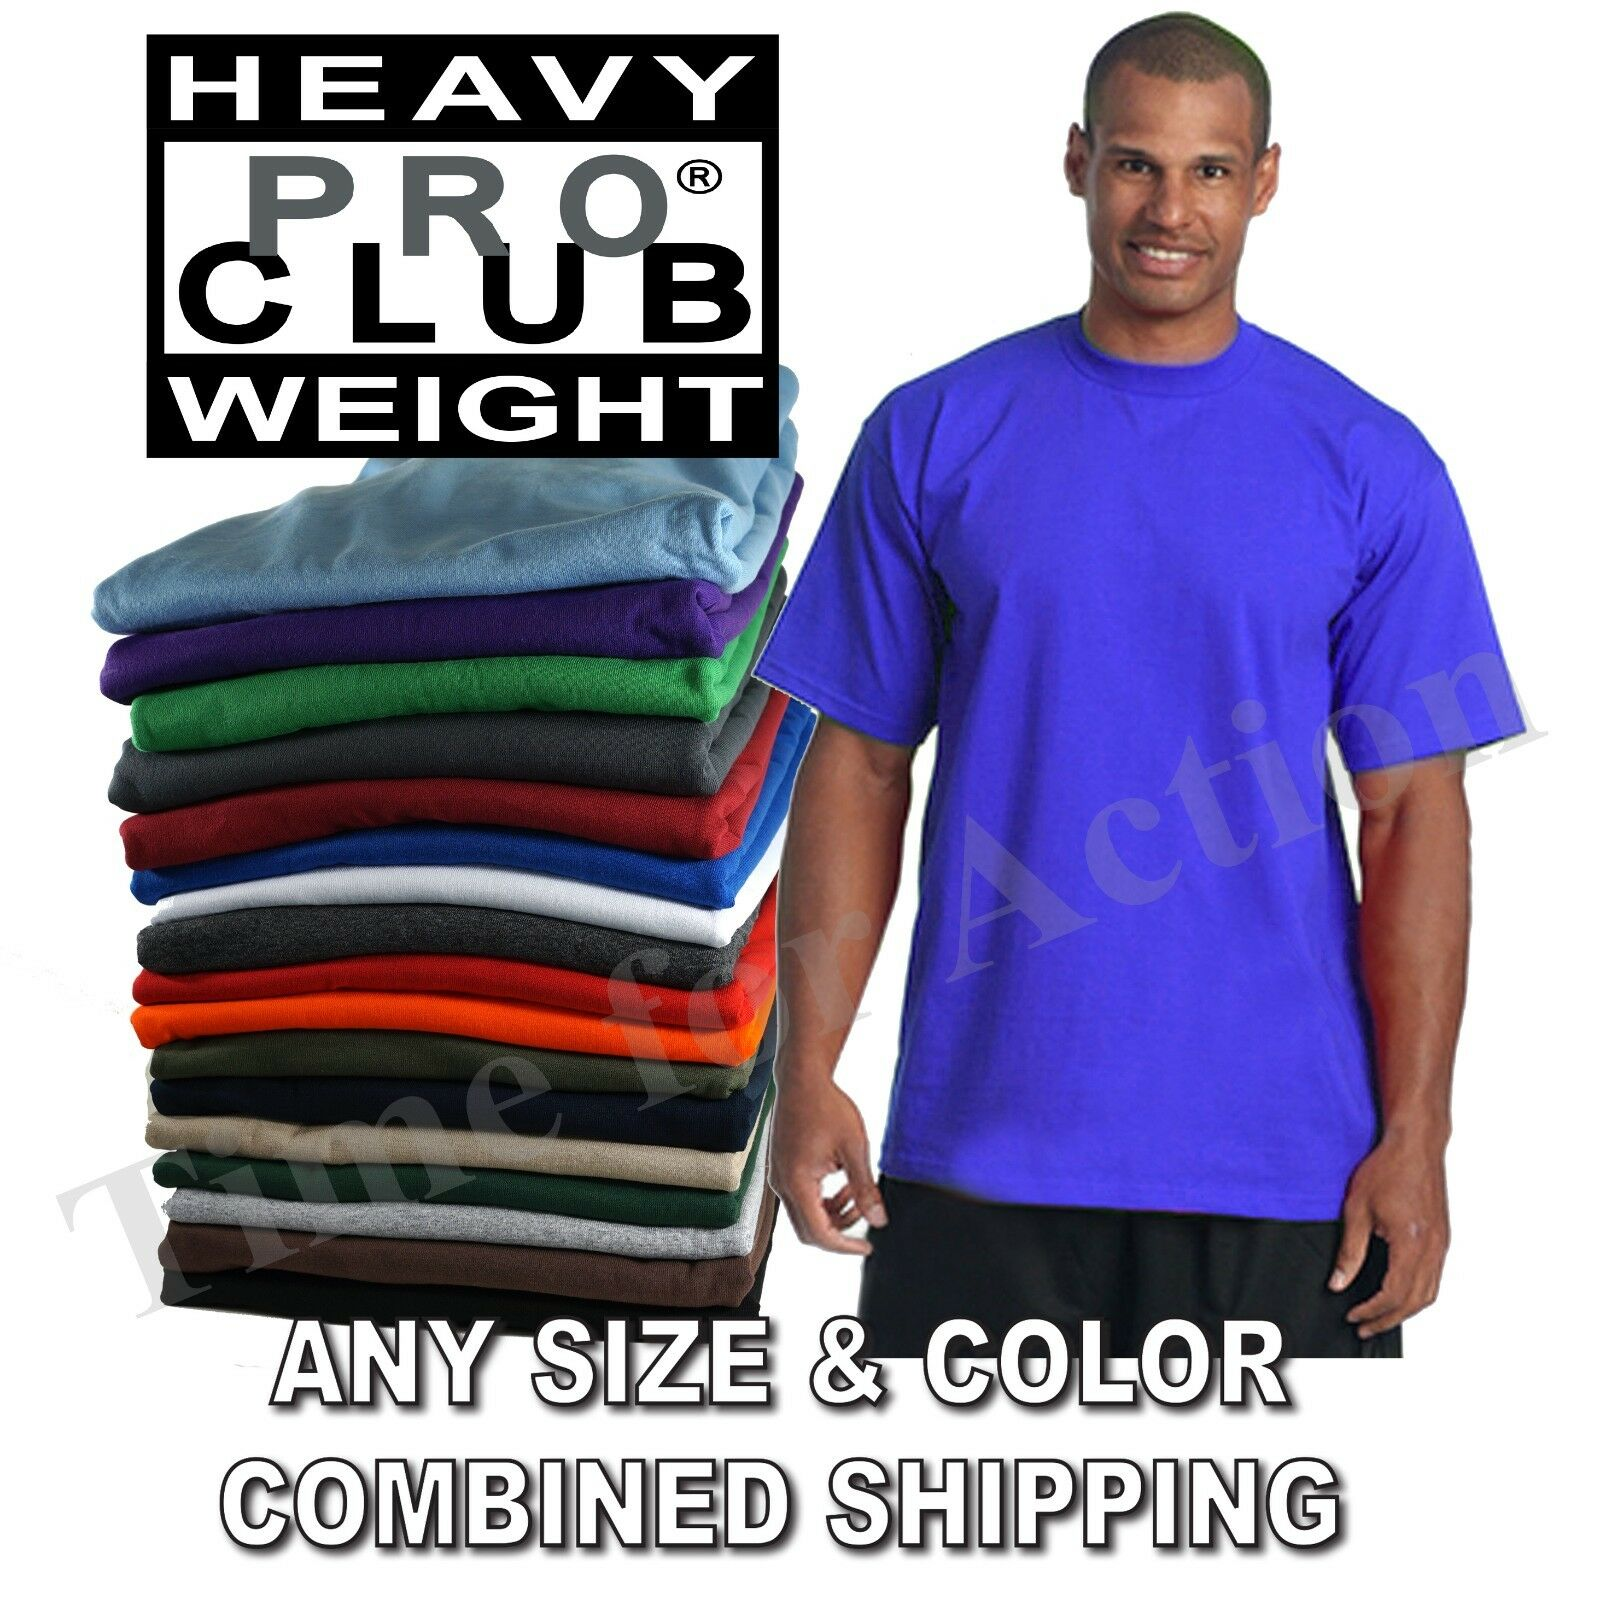 Изображение товара Pro Club Heavy Weight Short Sleeve Plain Basic Tall or Reg T-shirts Tee S-7XL